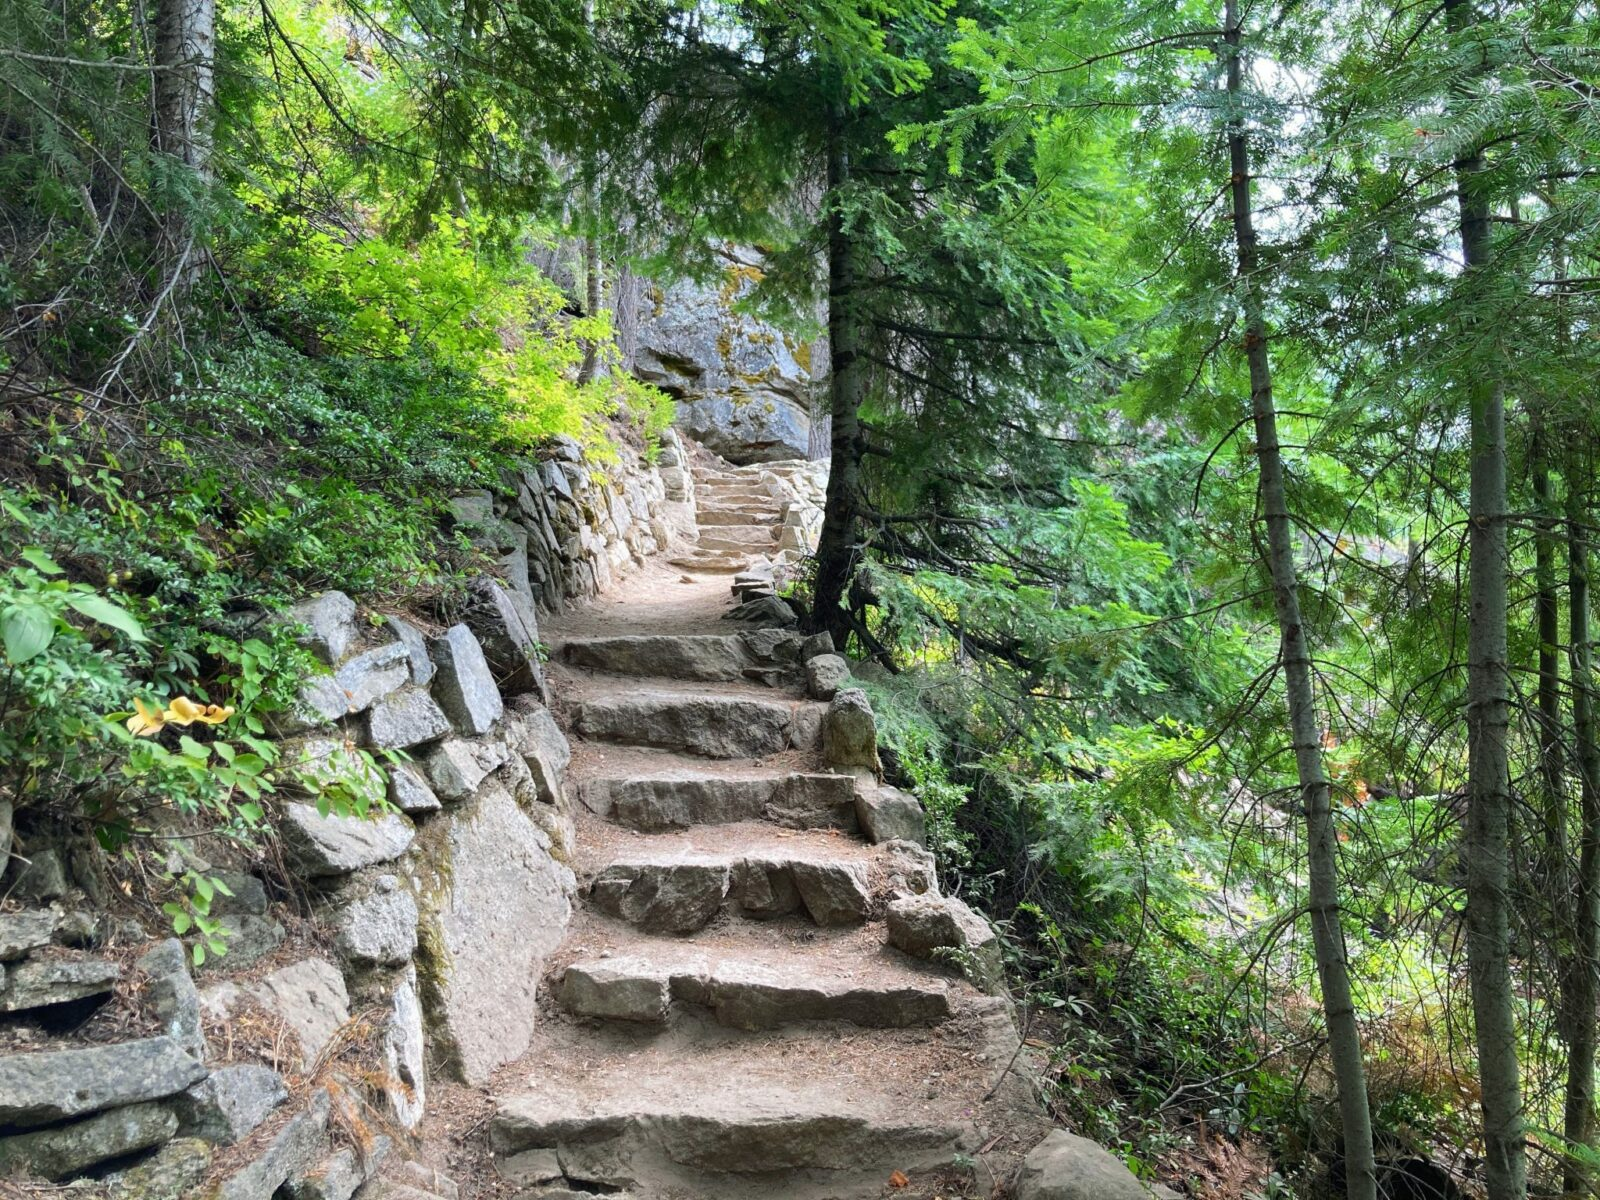 Stone steps along the Silver Falls trail through the forest.